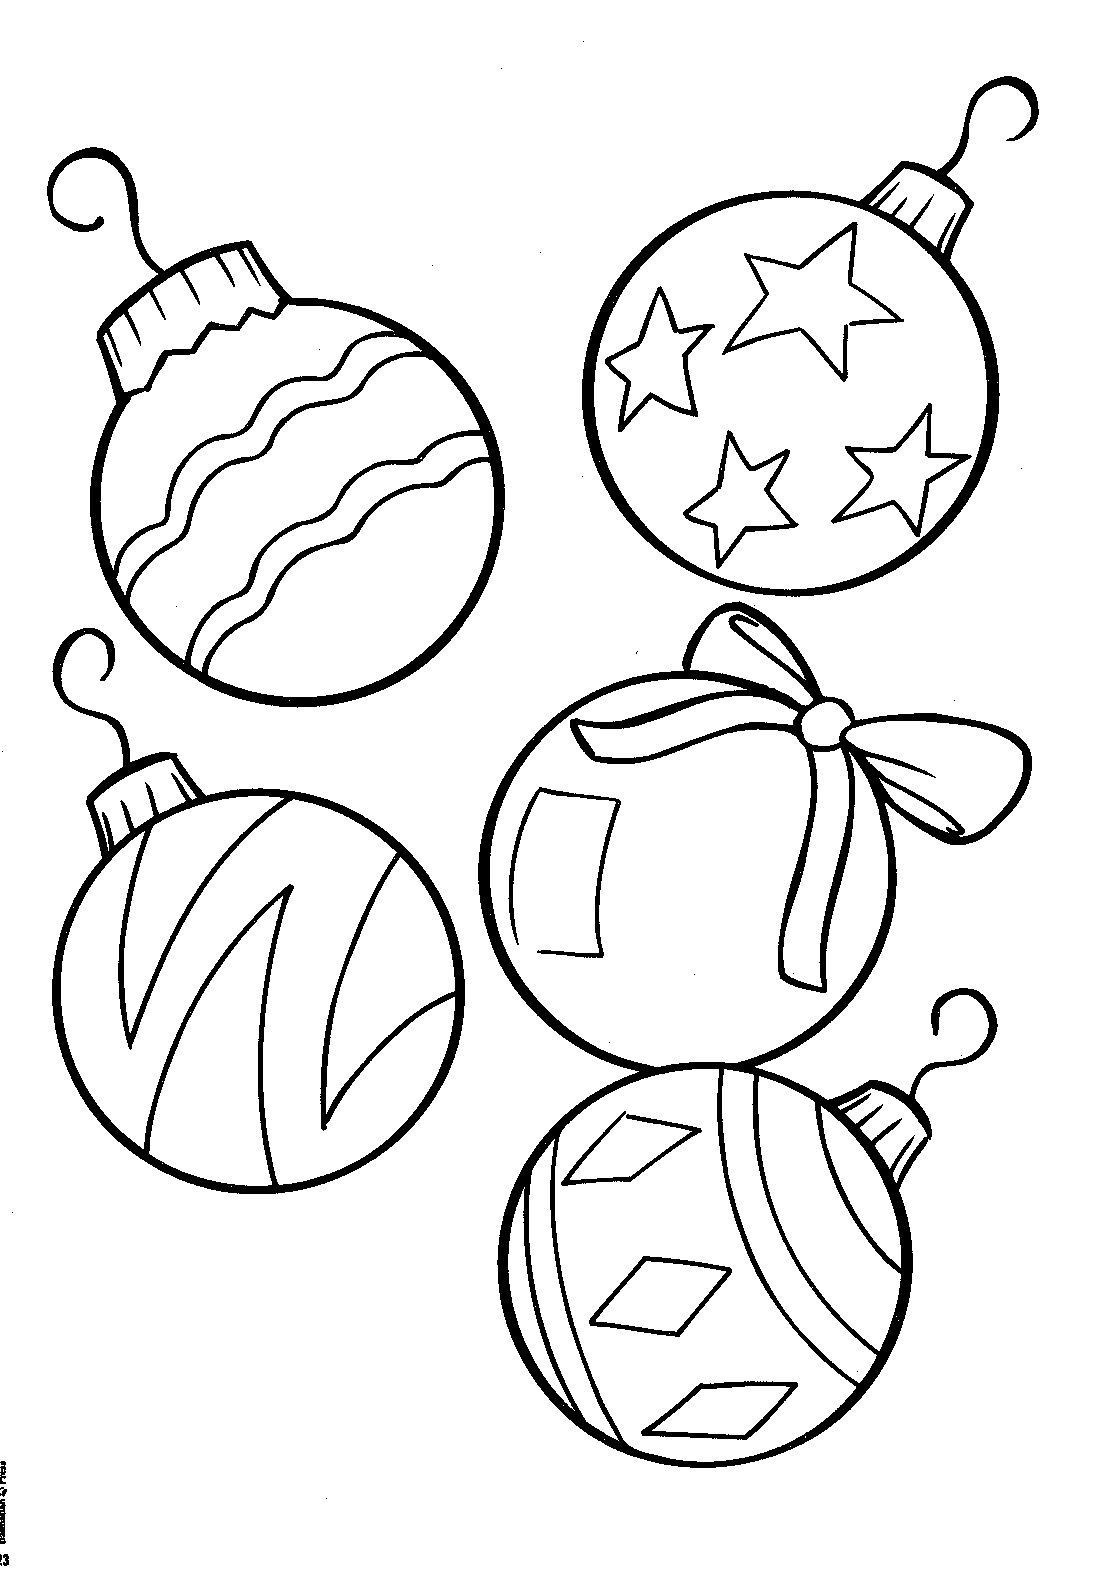 Pin By I T On Coloring Christmas Decorations Pinterest